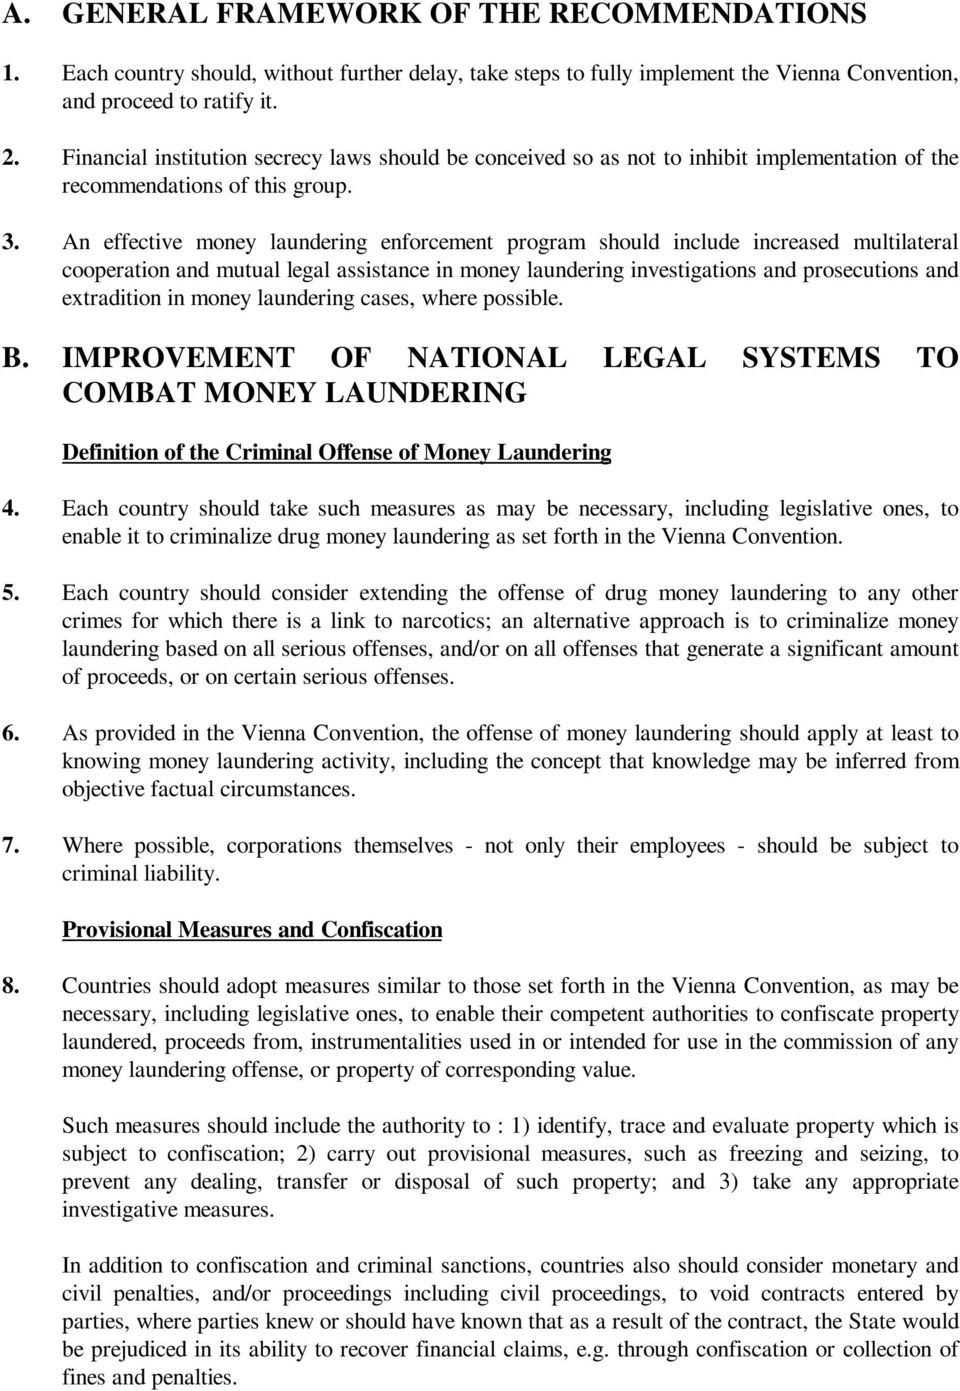 An effective money laundering enforcement program should include increased multilateral cooperation and mutual legal assistance in money laundering investigations and prosecutions and extradition in